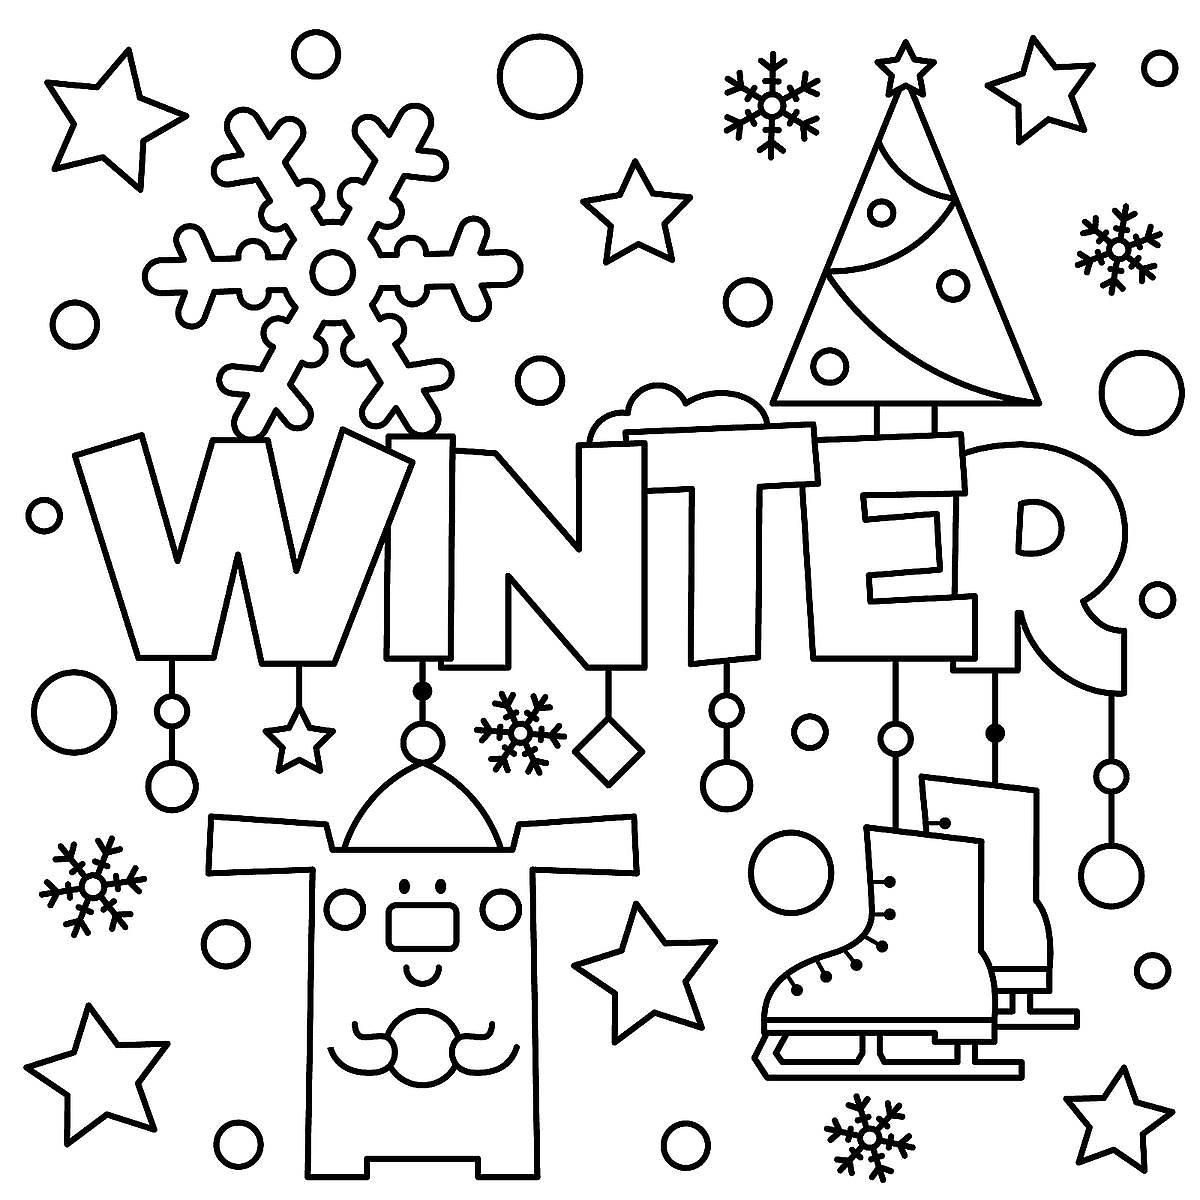 Winter Puzzle Coloring Pages Printable Winter Themed Activity Pages For Kids Printables 30seconds Mom Coloring Pages Winter Coloring Pages For Kids Coloring Pages